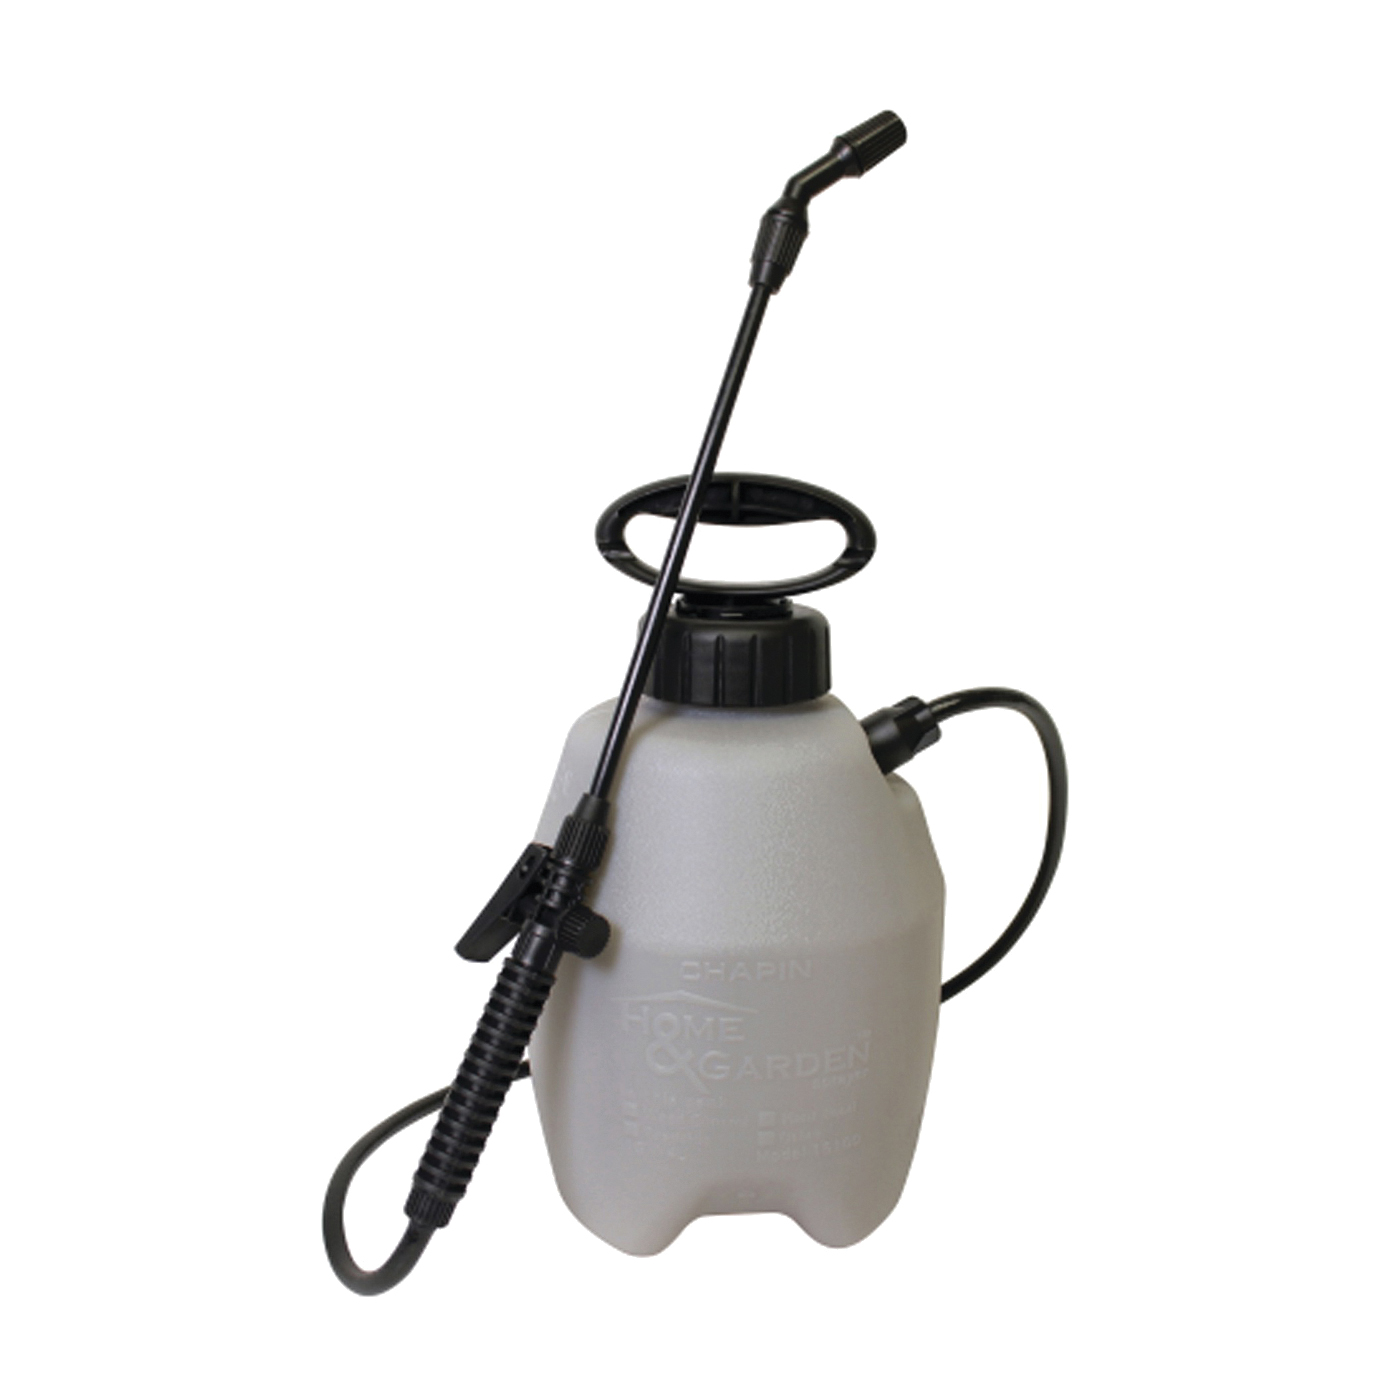 Picture of CHAPIN 16200 Home and Garden Sprayer, 2 gal Tank, Poly Tank, 34 in L Hose